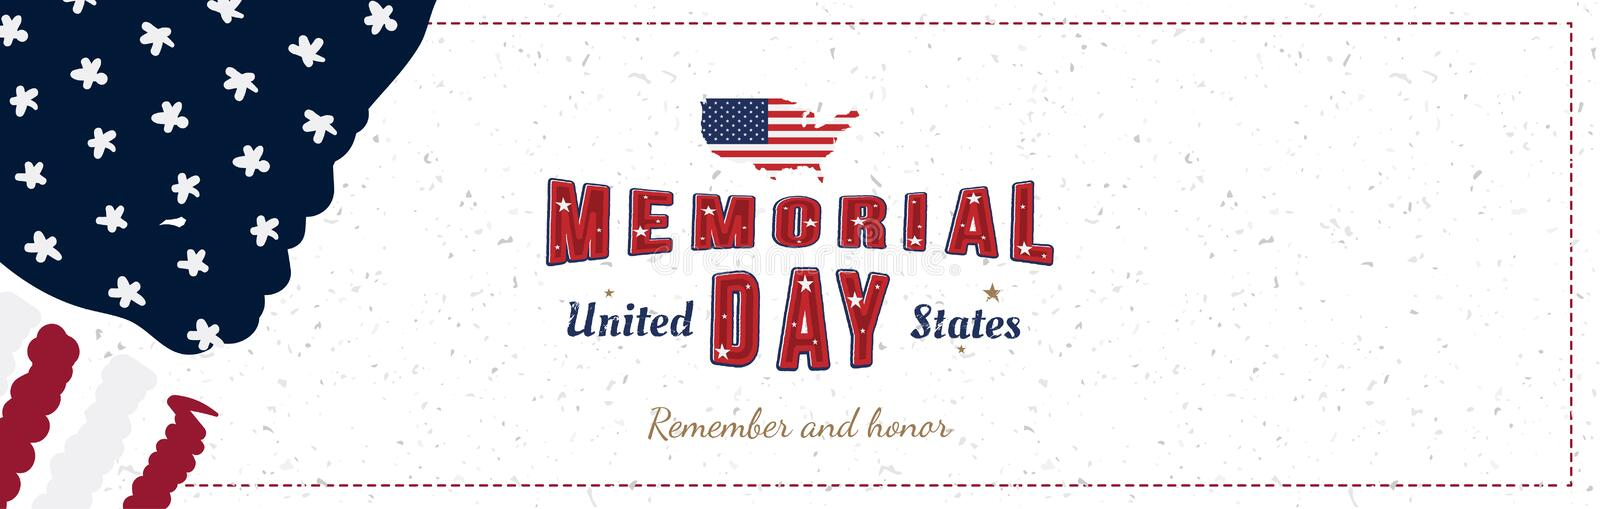 Happy Memorial Day. Greeting card with original font and USA map and flag. Template for American holidays. Flat illustration EPS10.  royalty free illustration